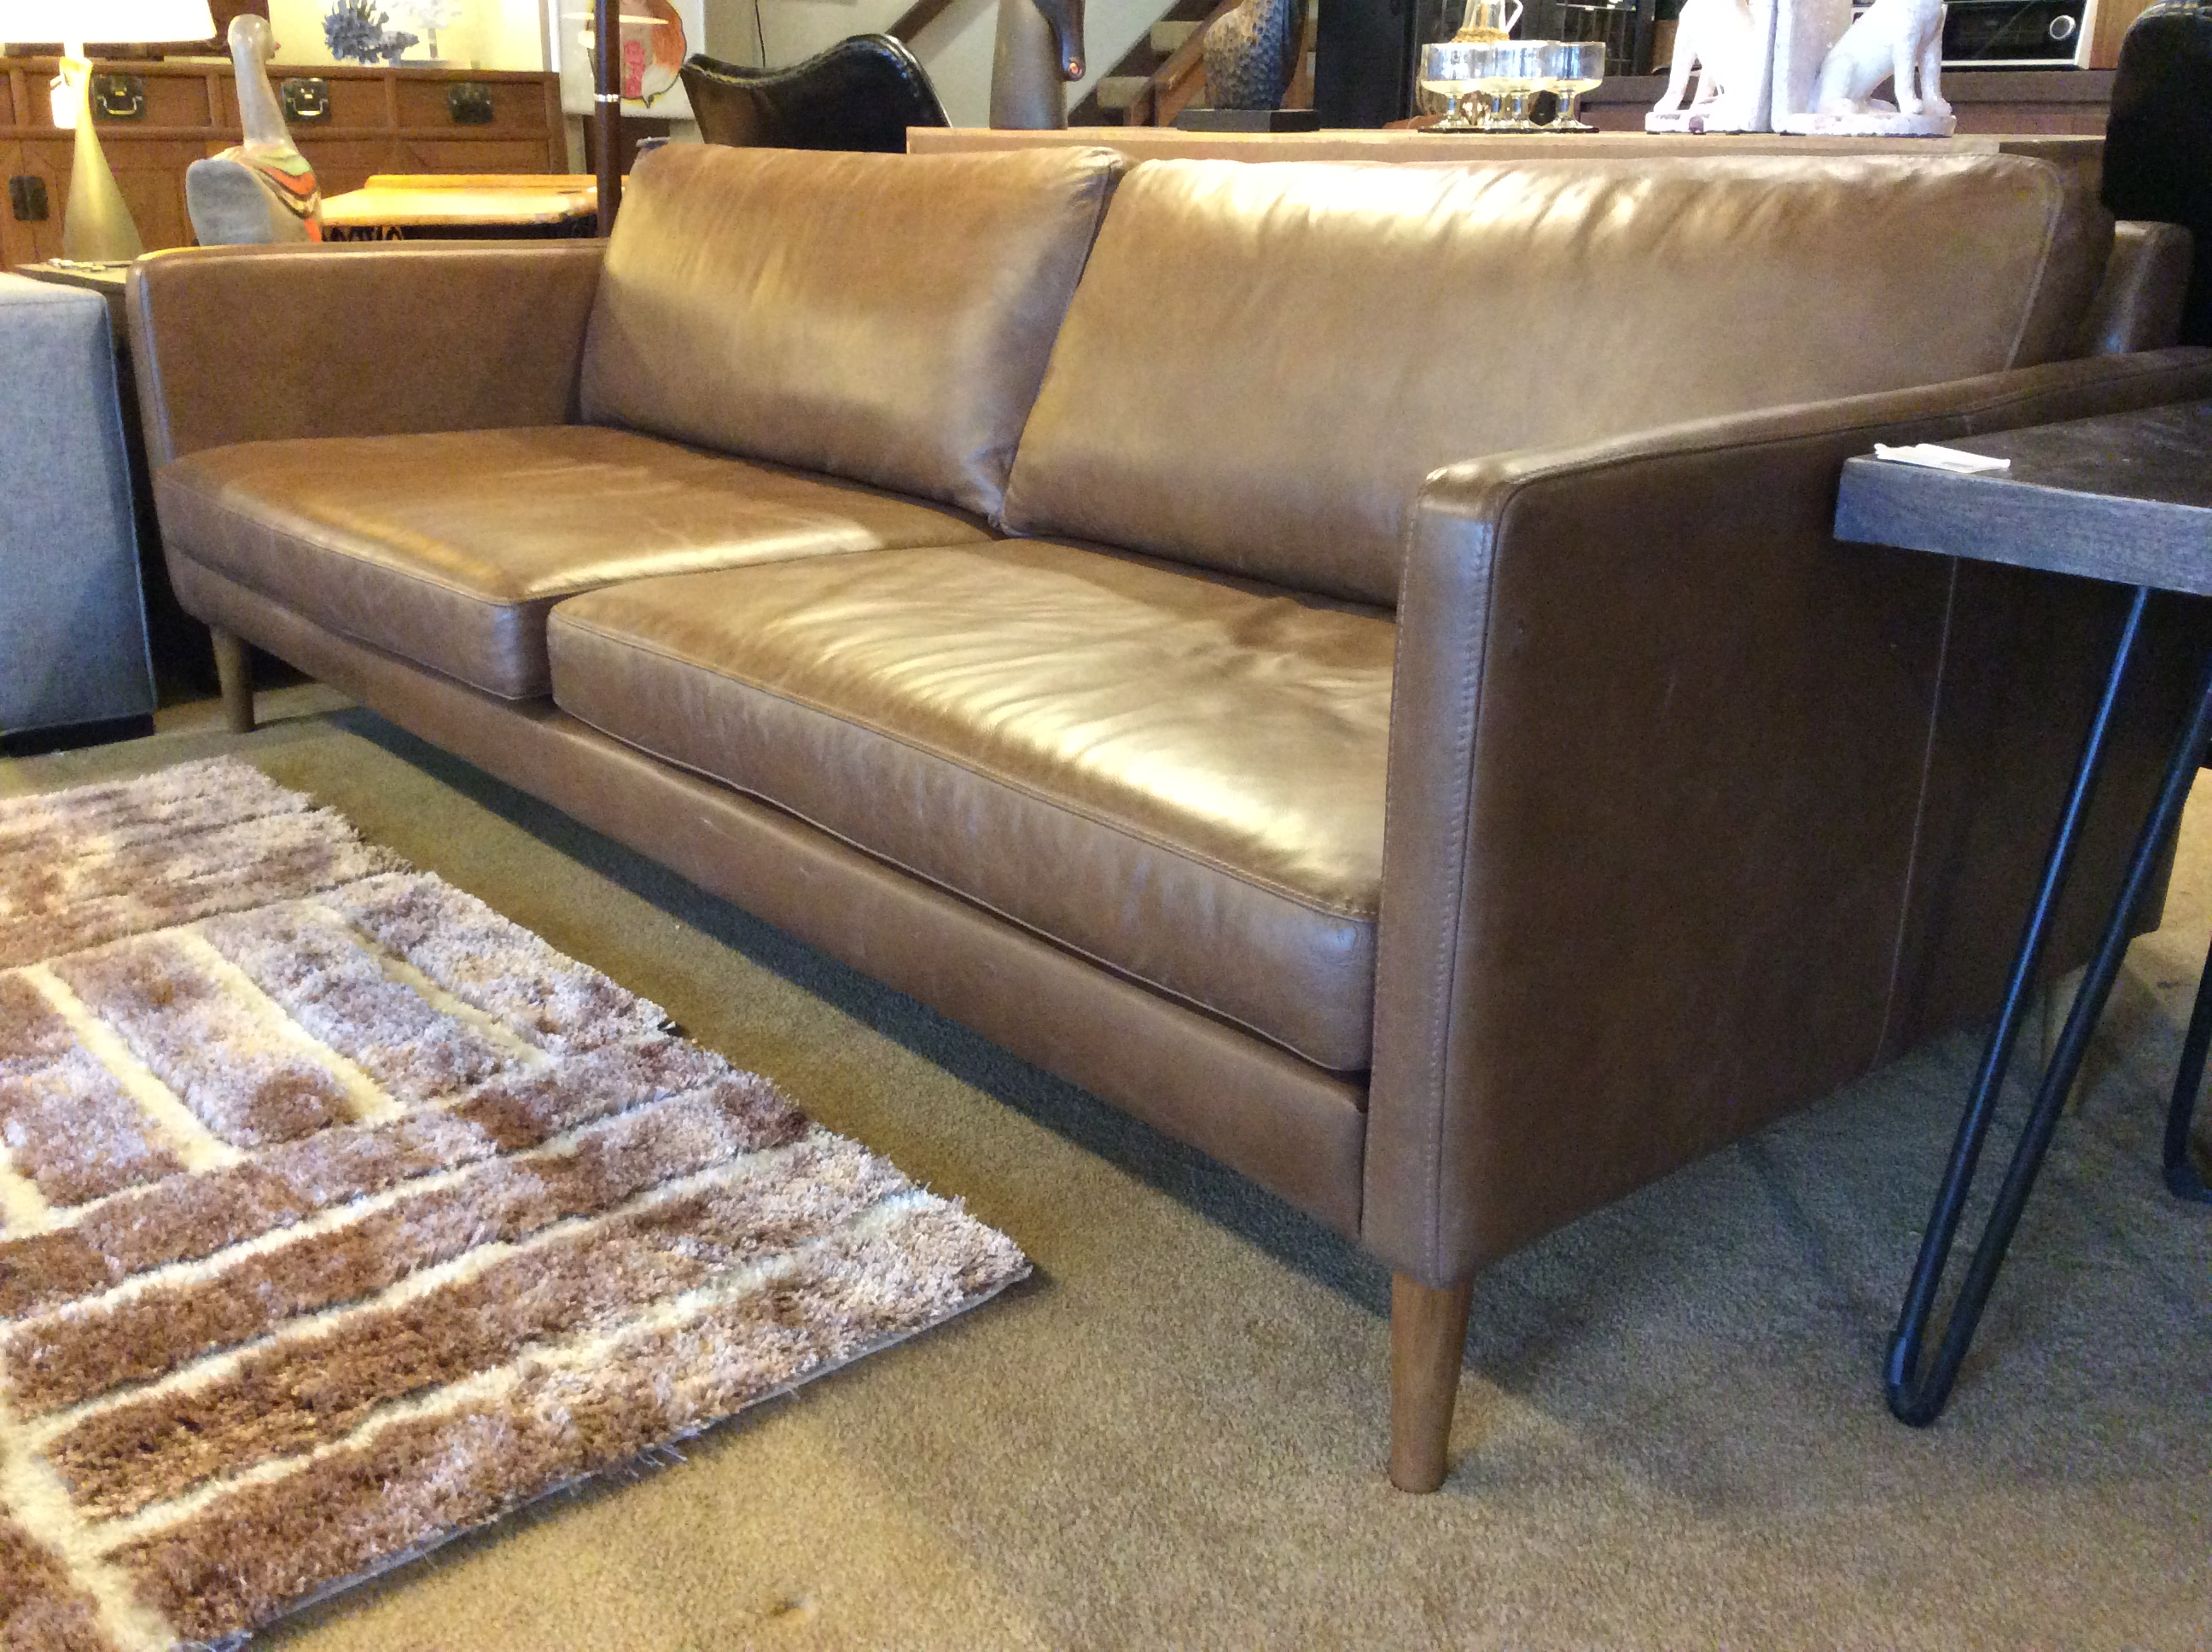 Furniture Consignment Seattle Wa Antique Furniture Seattle Antique Furniture Vasey Upholstery